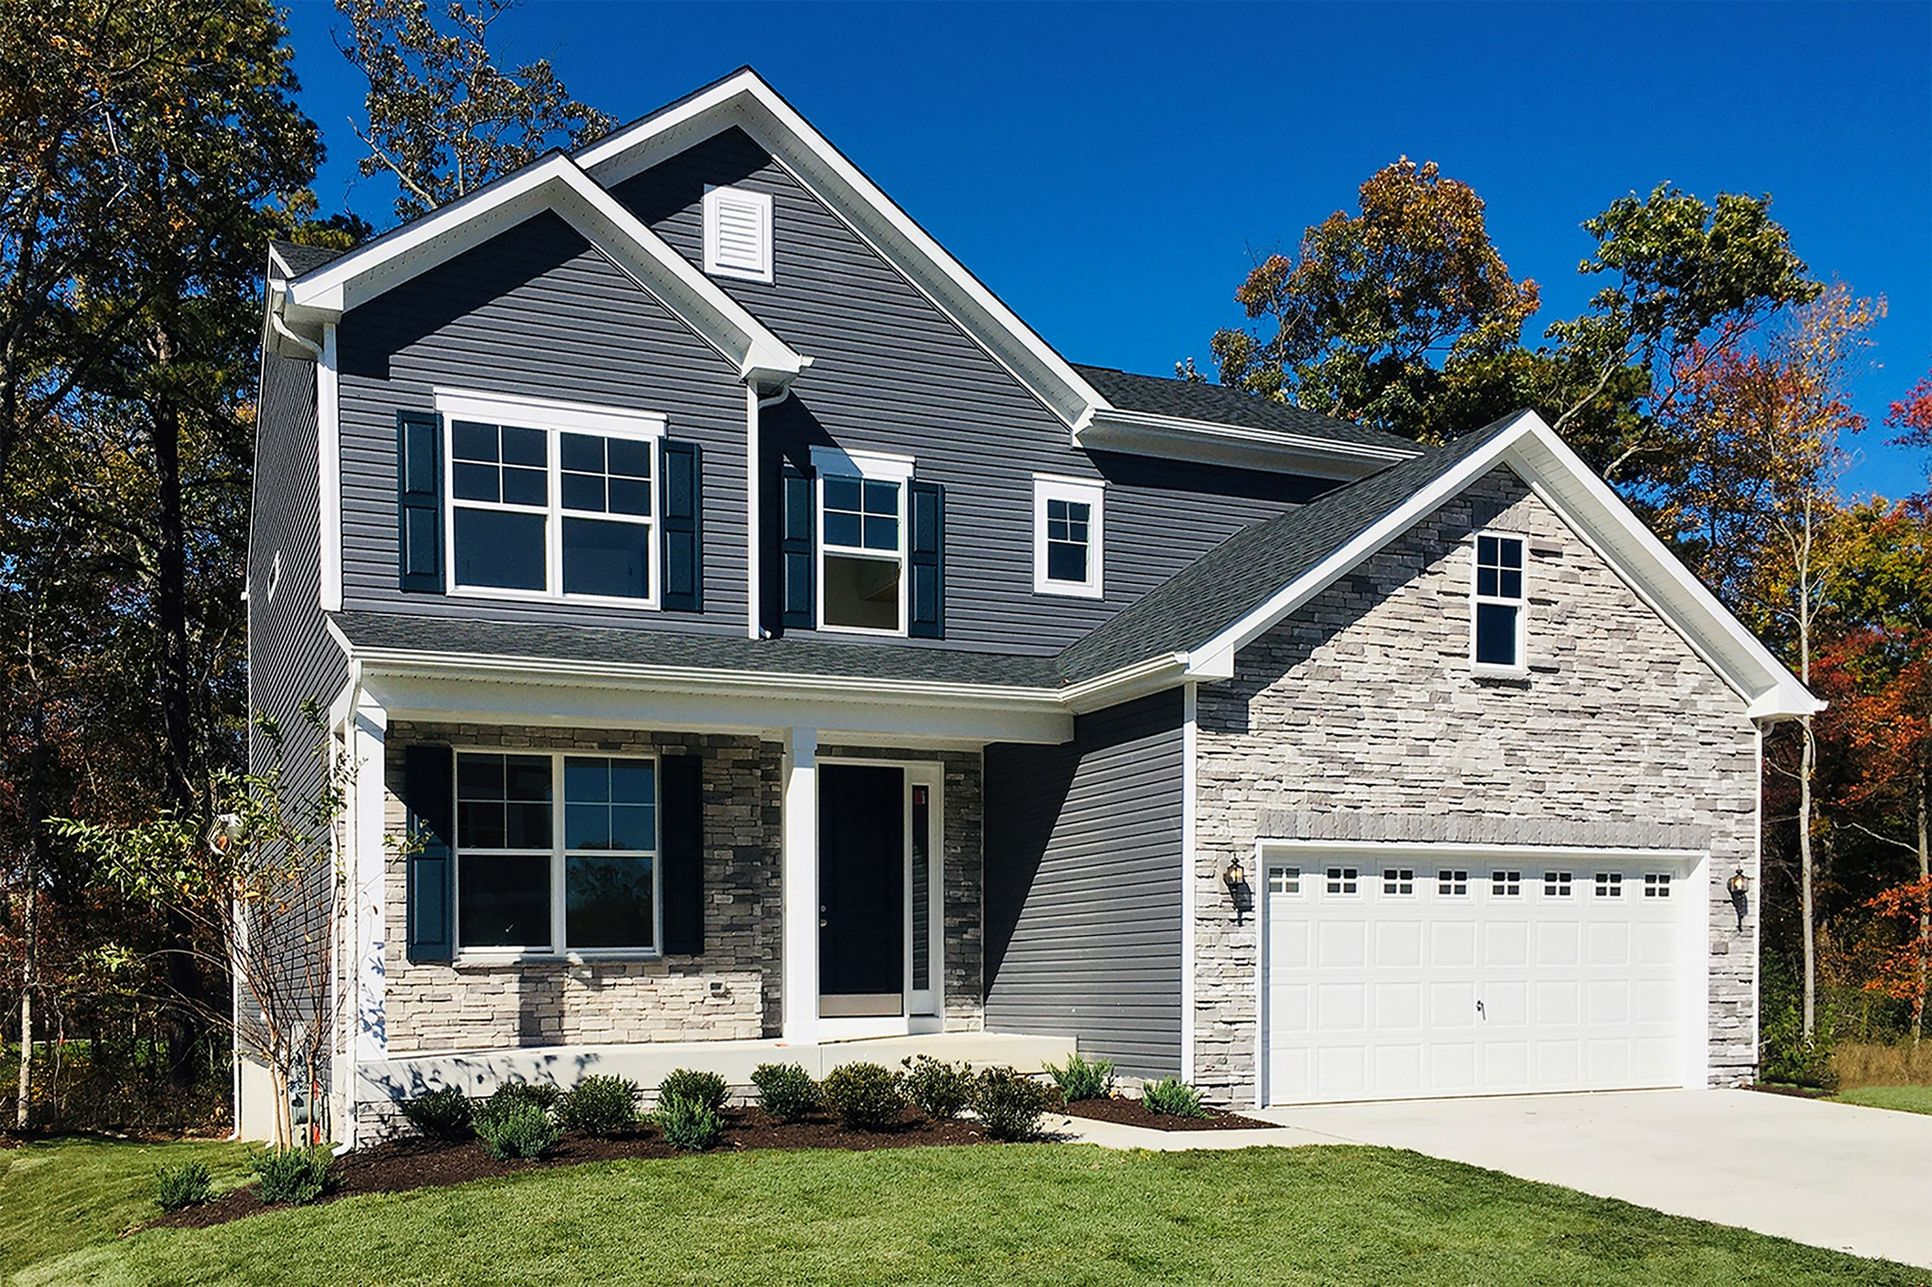 Thumbnail Haddenfield II siding in brittany manor new homes in mount airy maryland